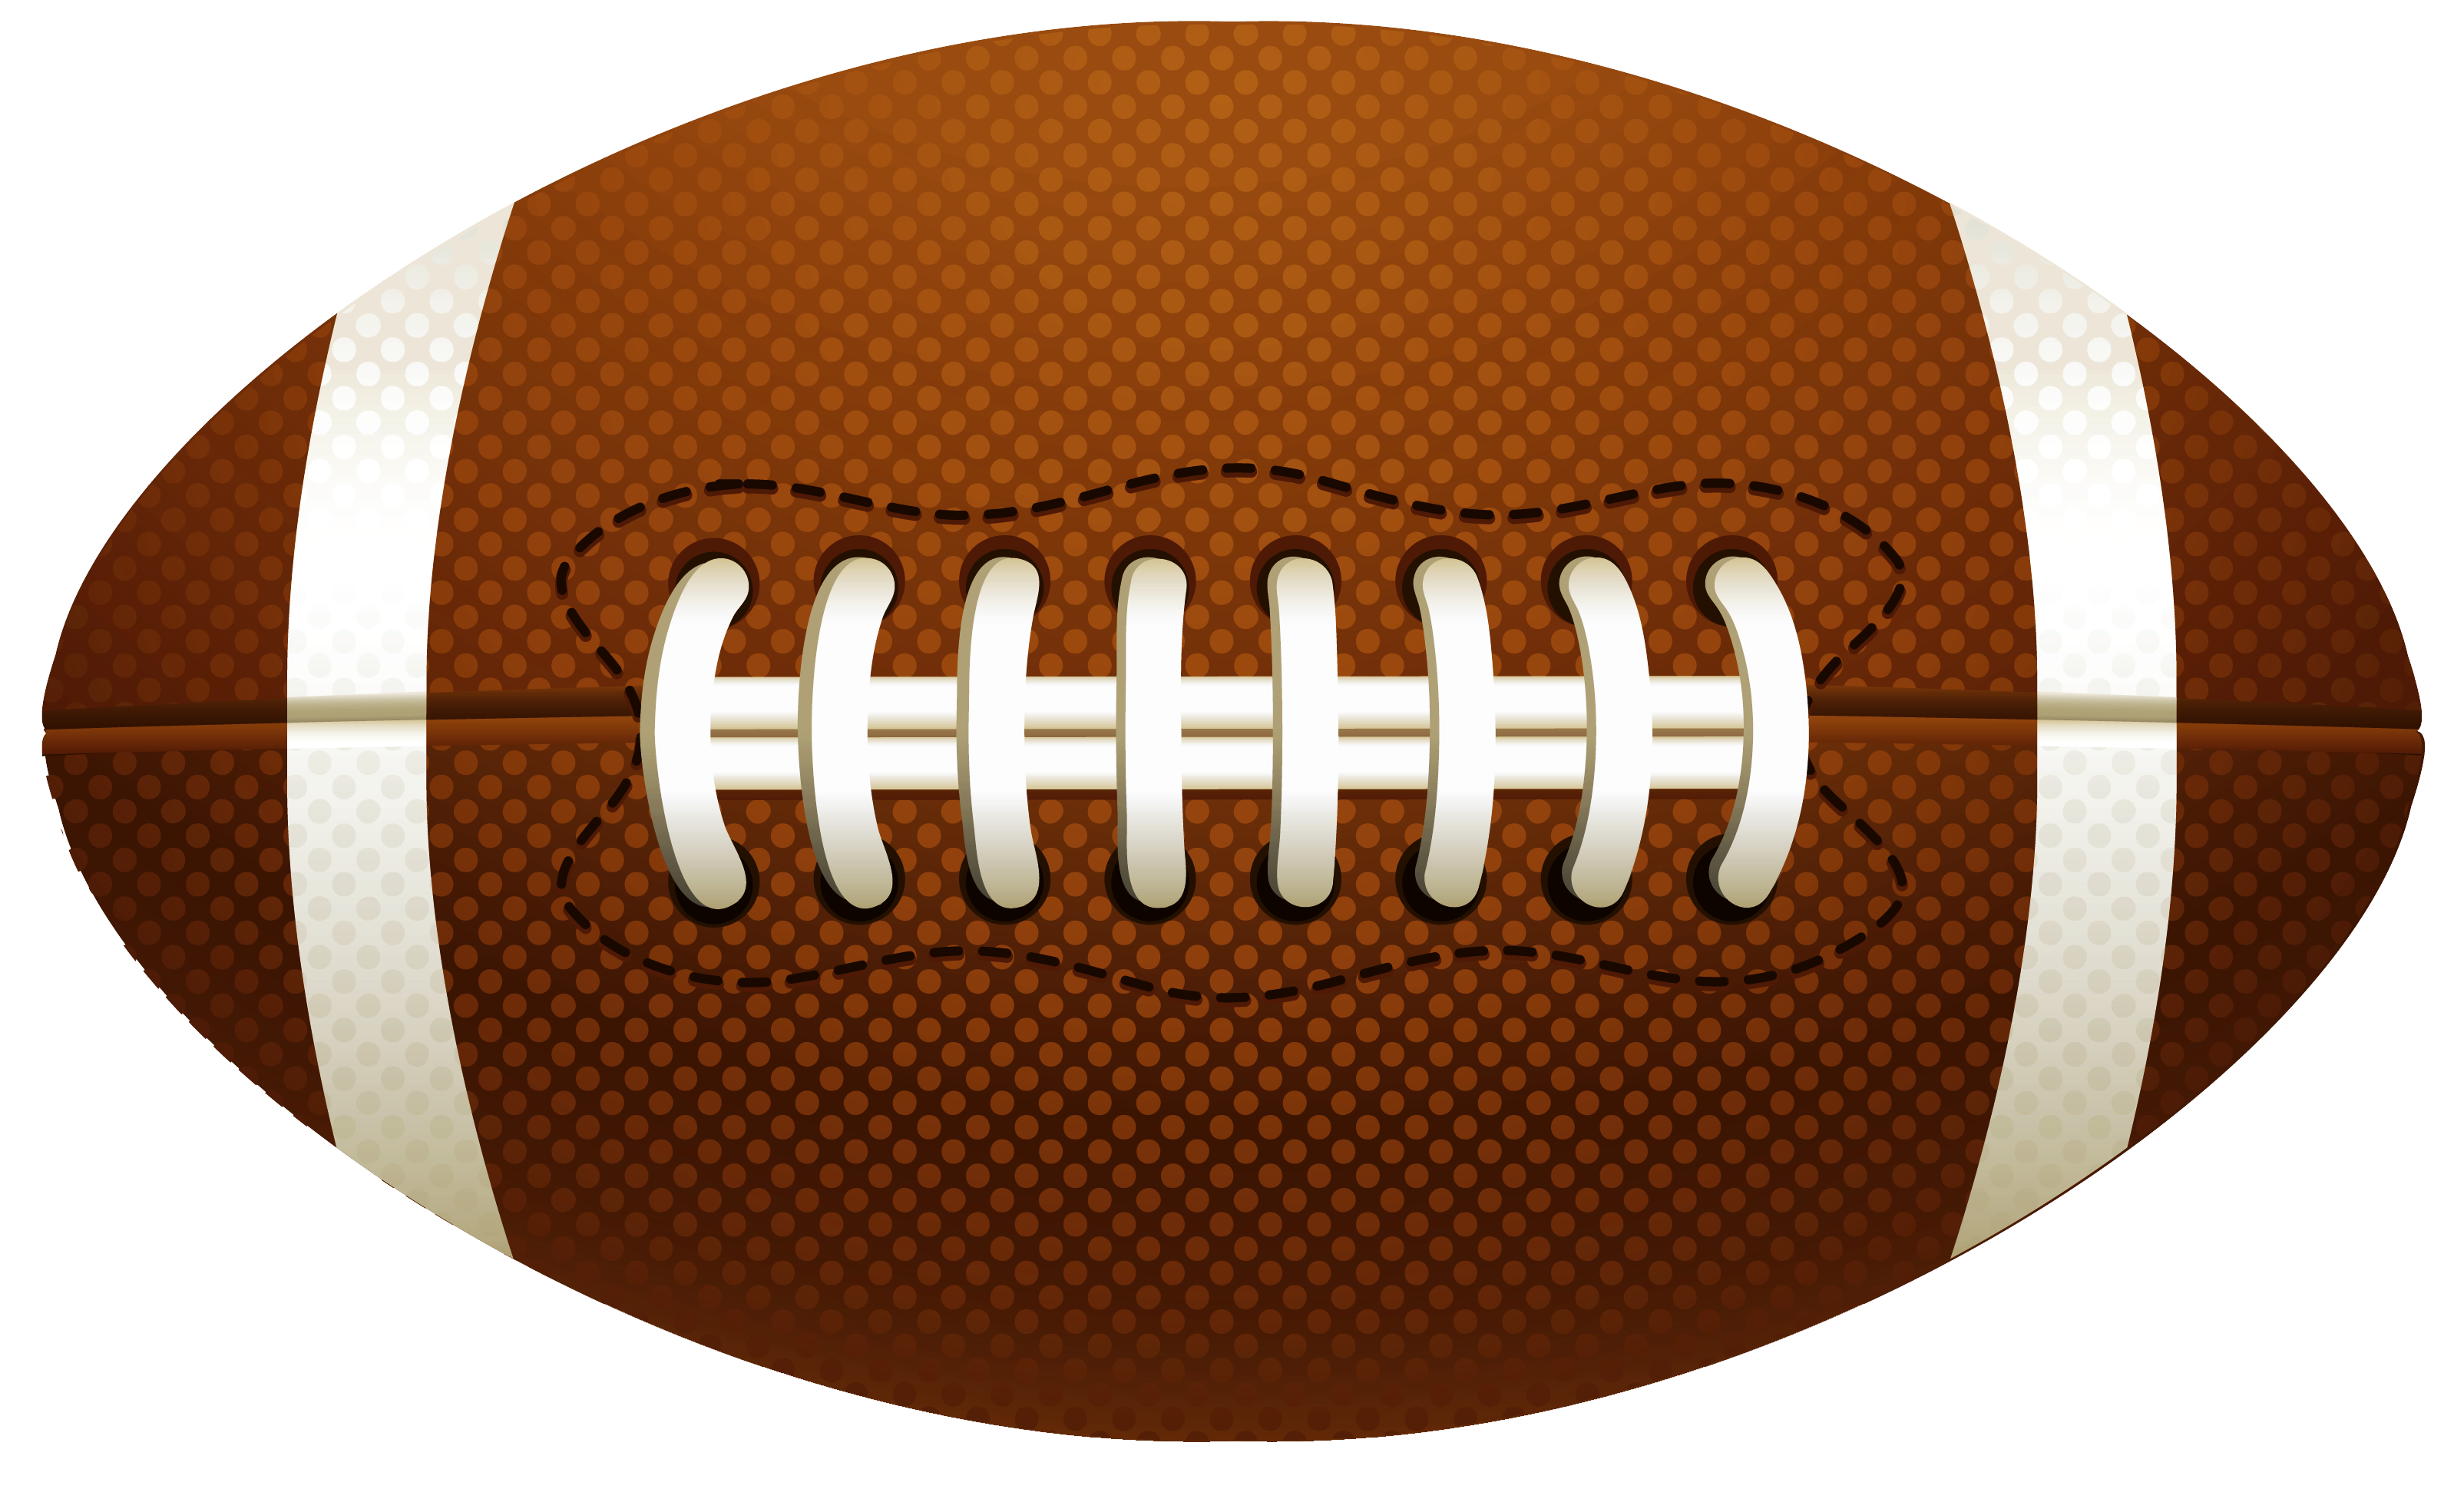 svg  collection of images. Football clipart.